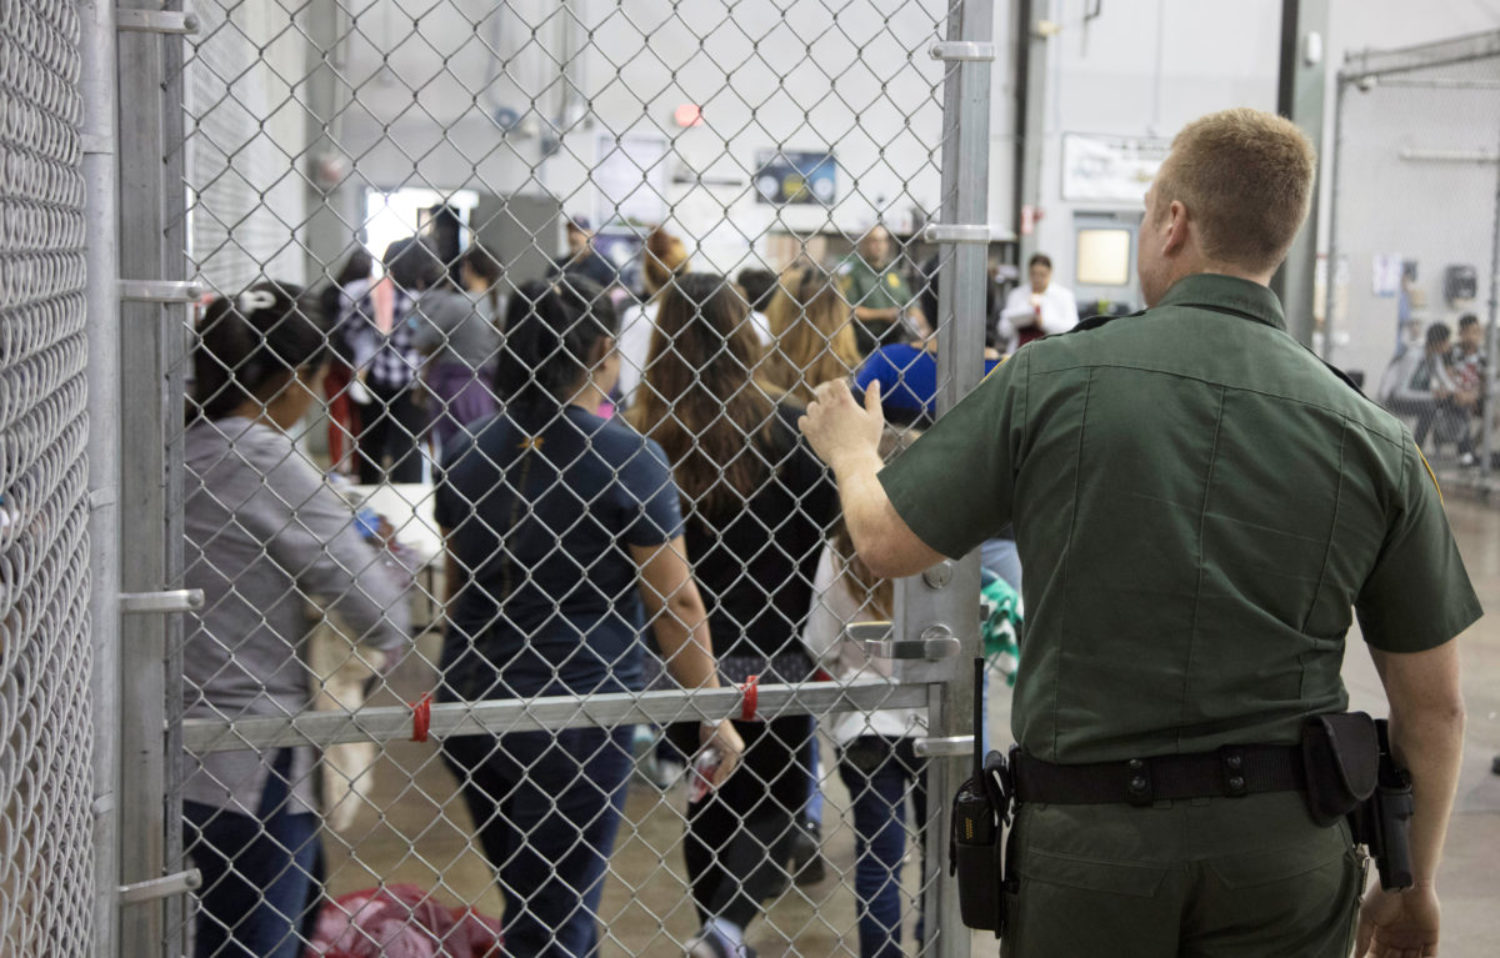 A view of inside CBP detention facility shows detainees inside fenced areas at Rio Grande Valley Centralized Processing Center in Texas